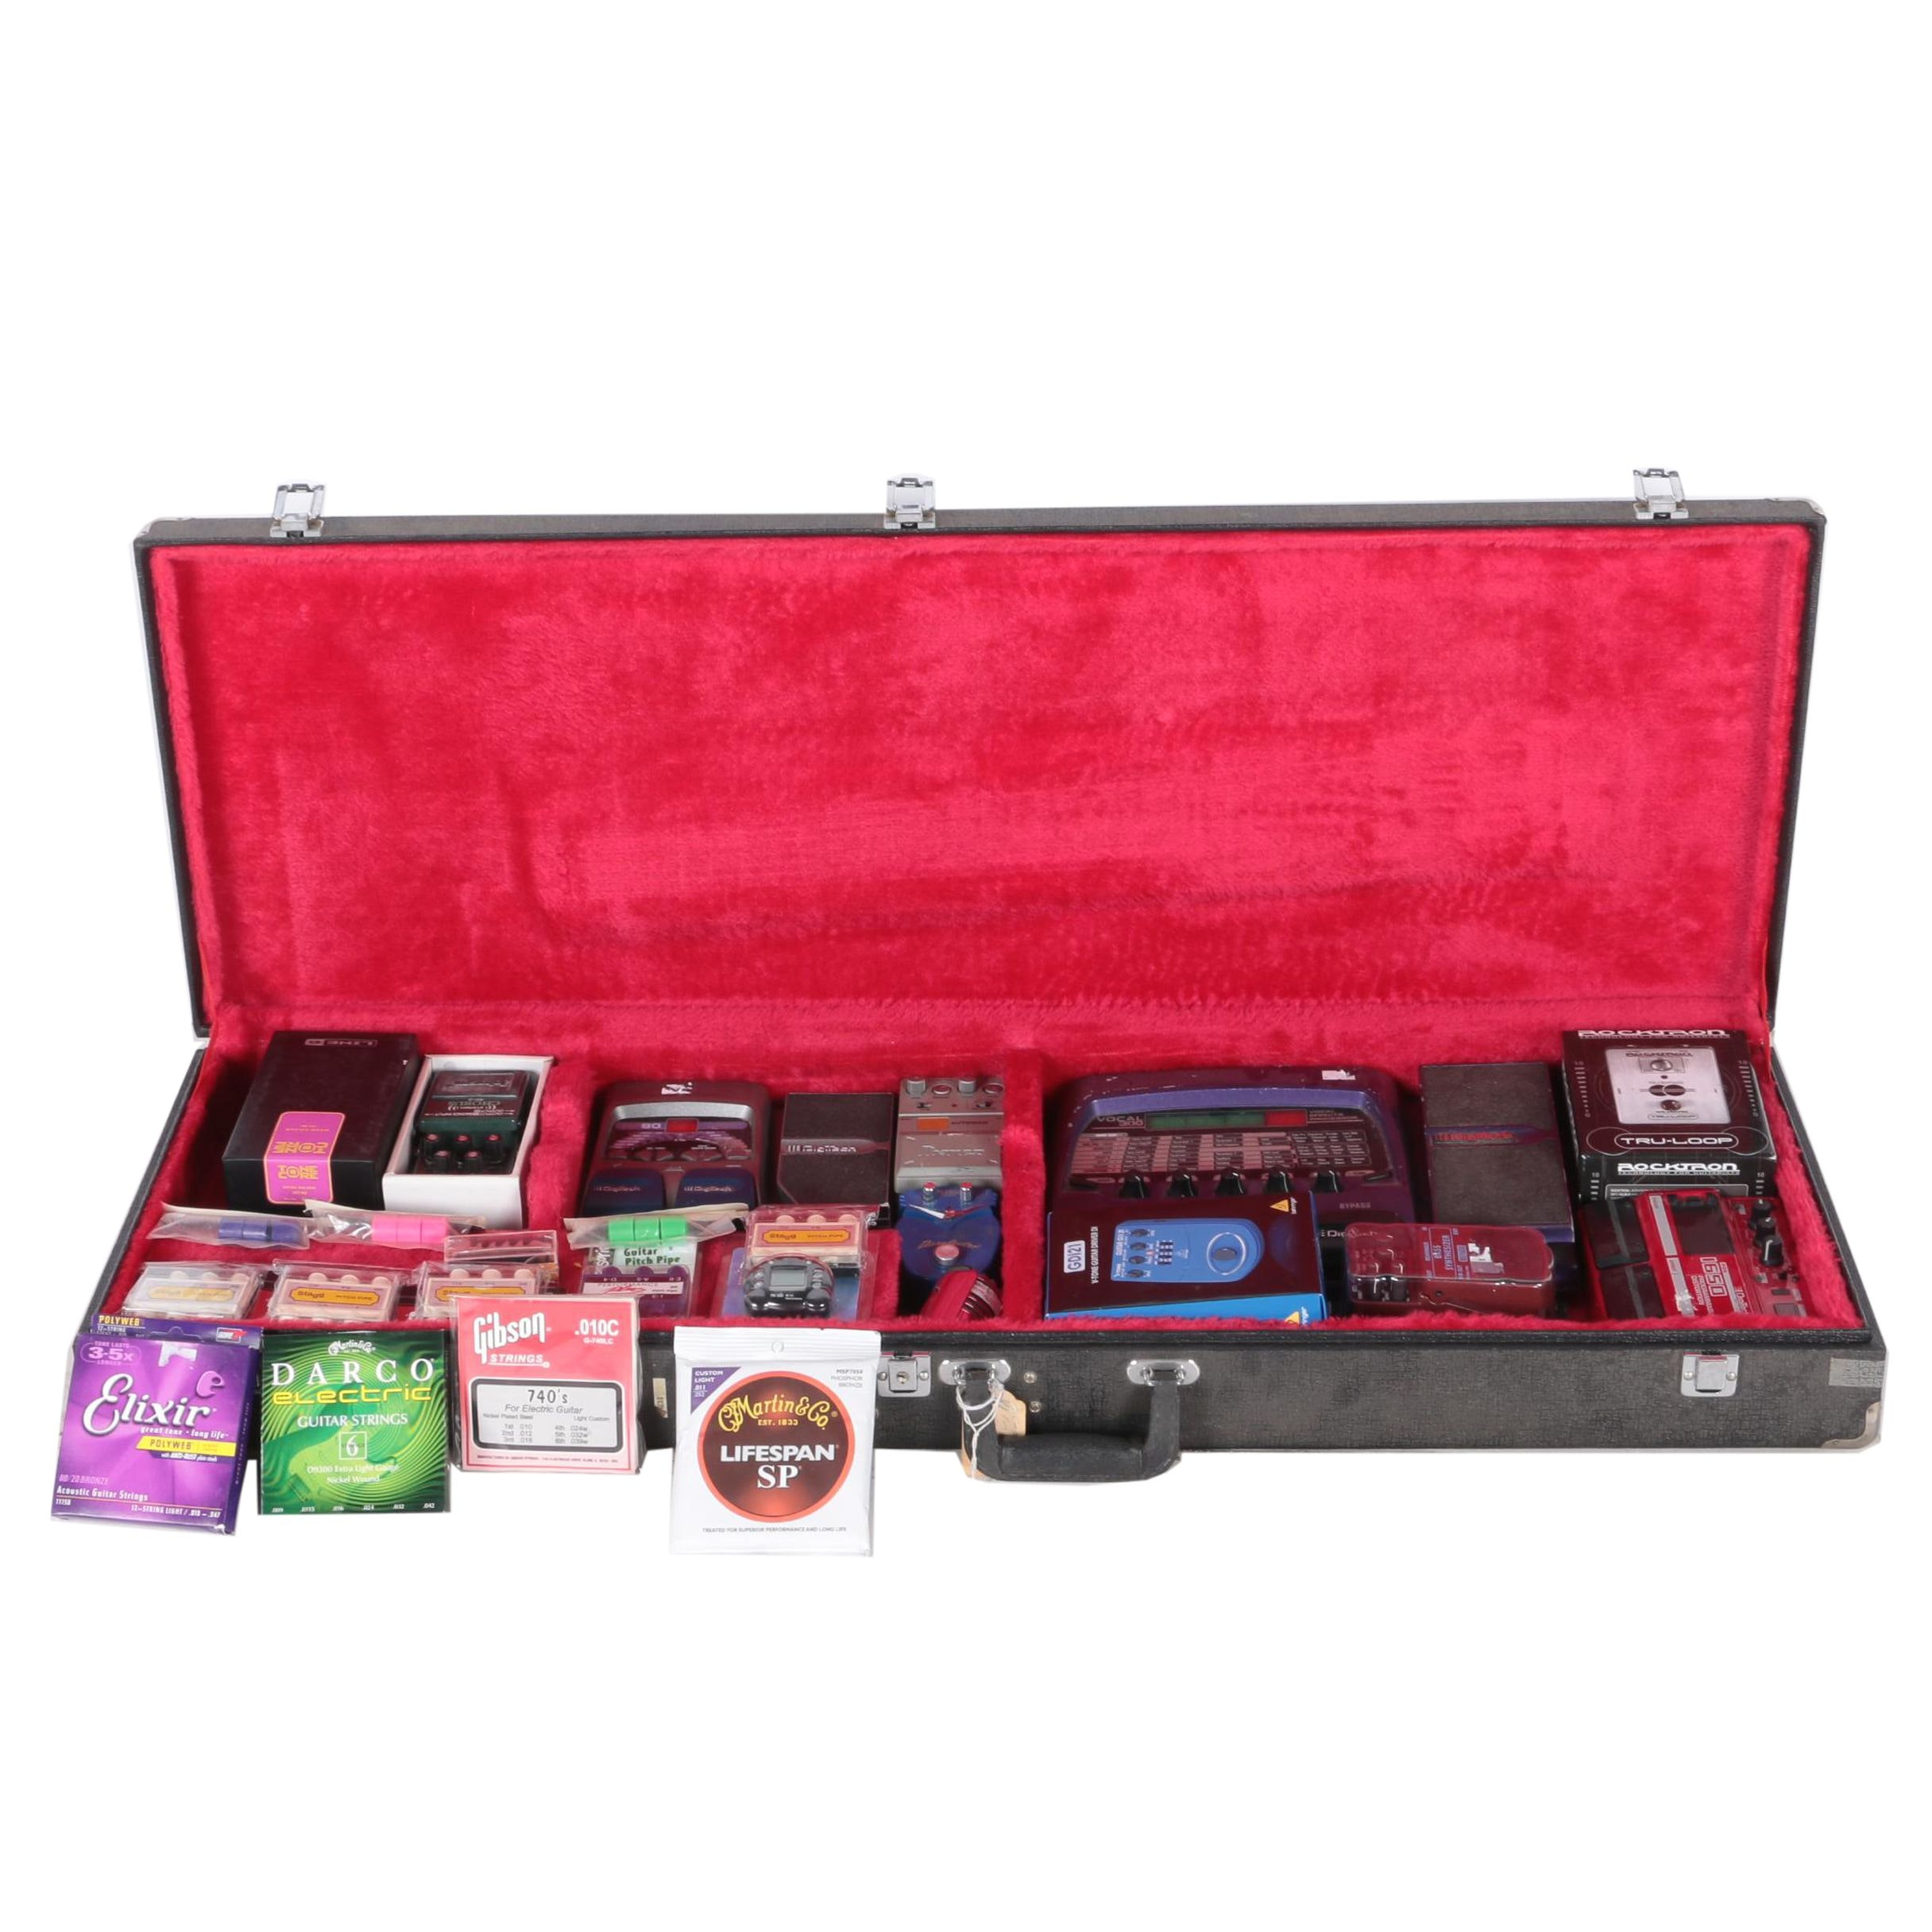 Case with Musical Equipment and Guitar Accessories